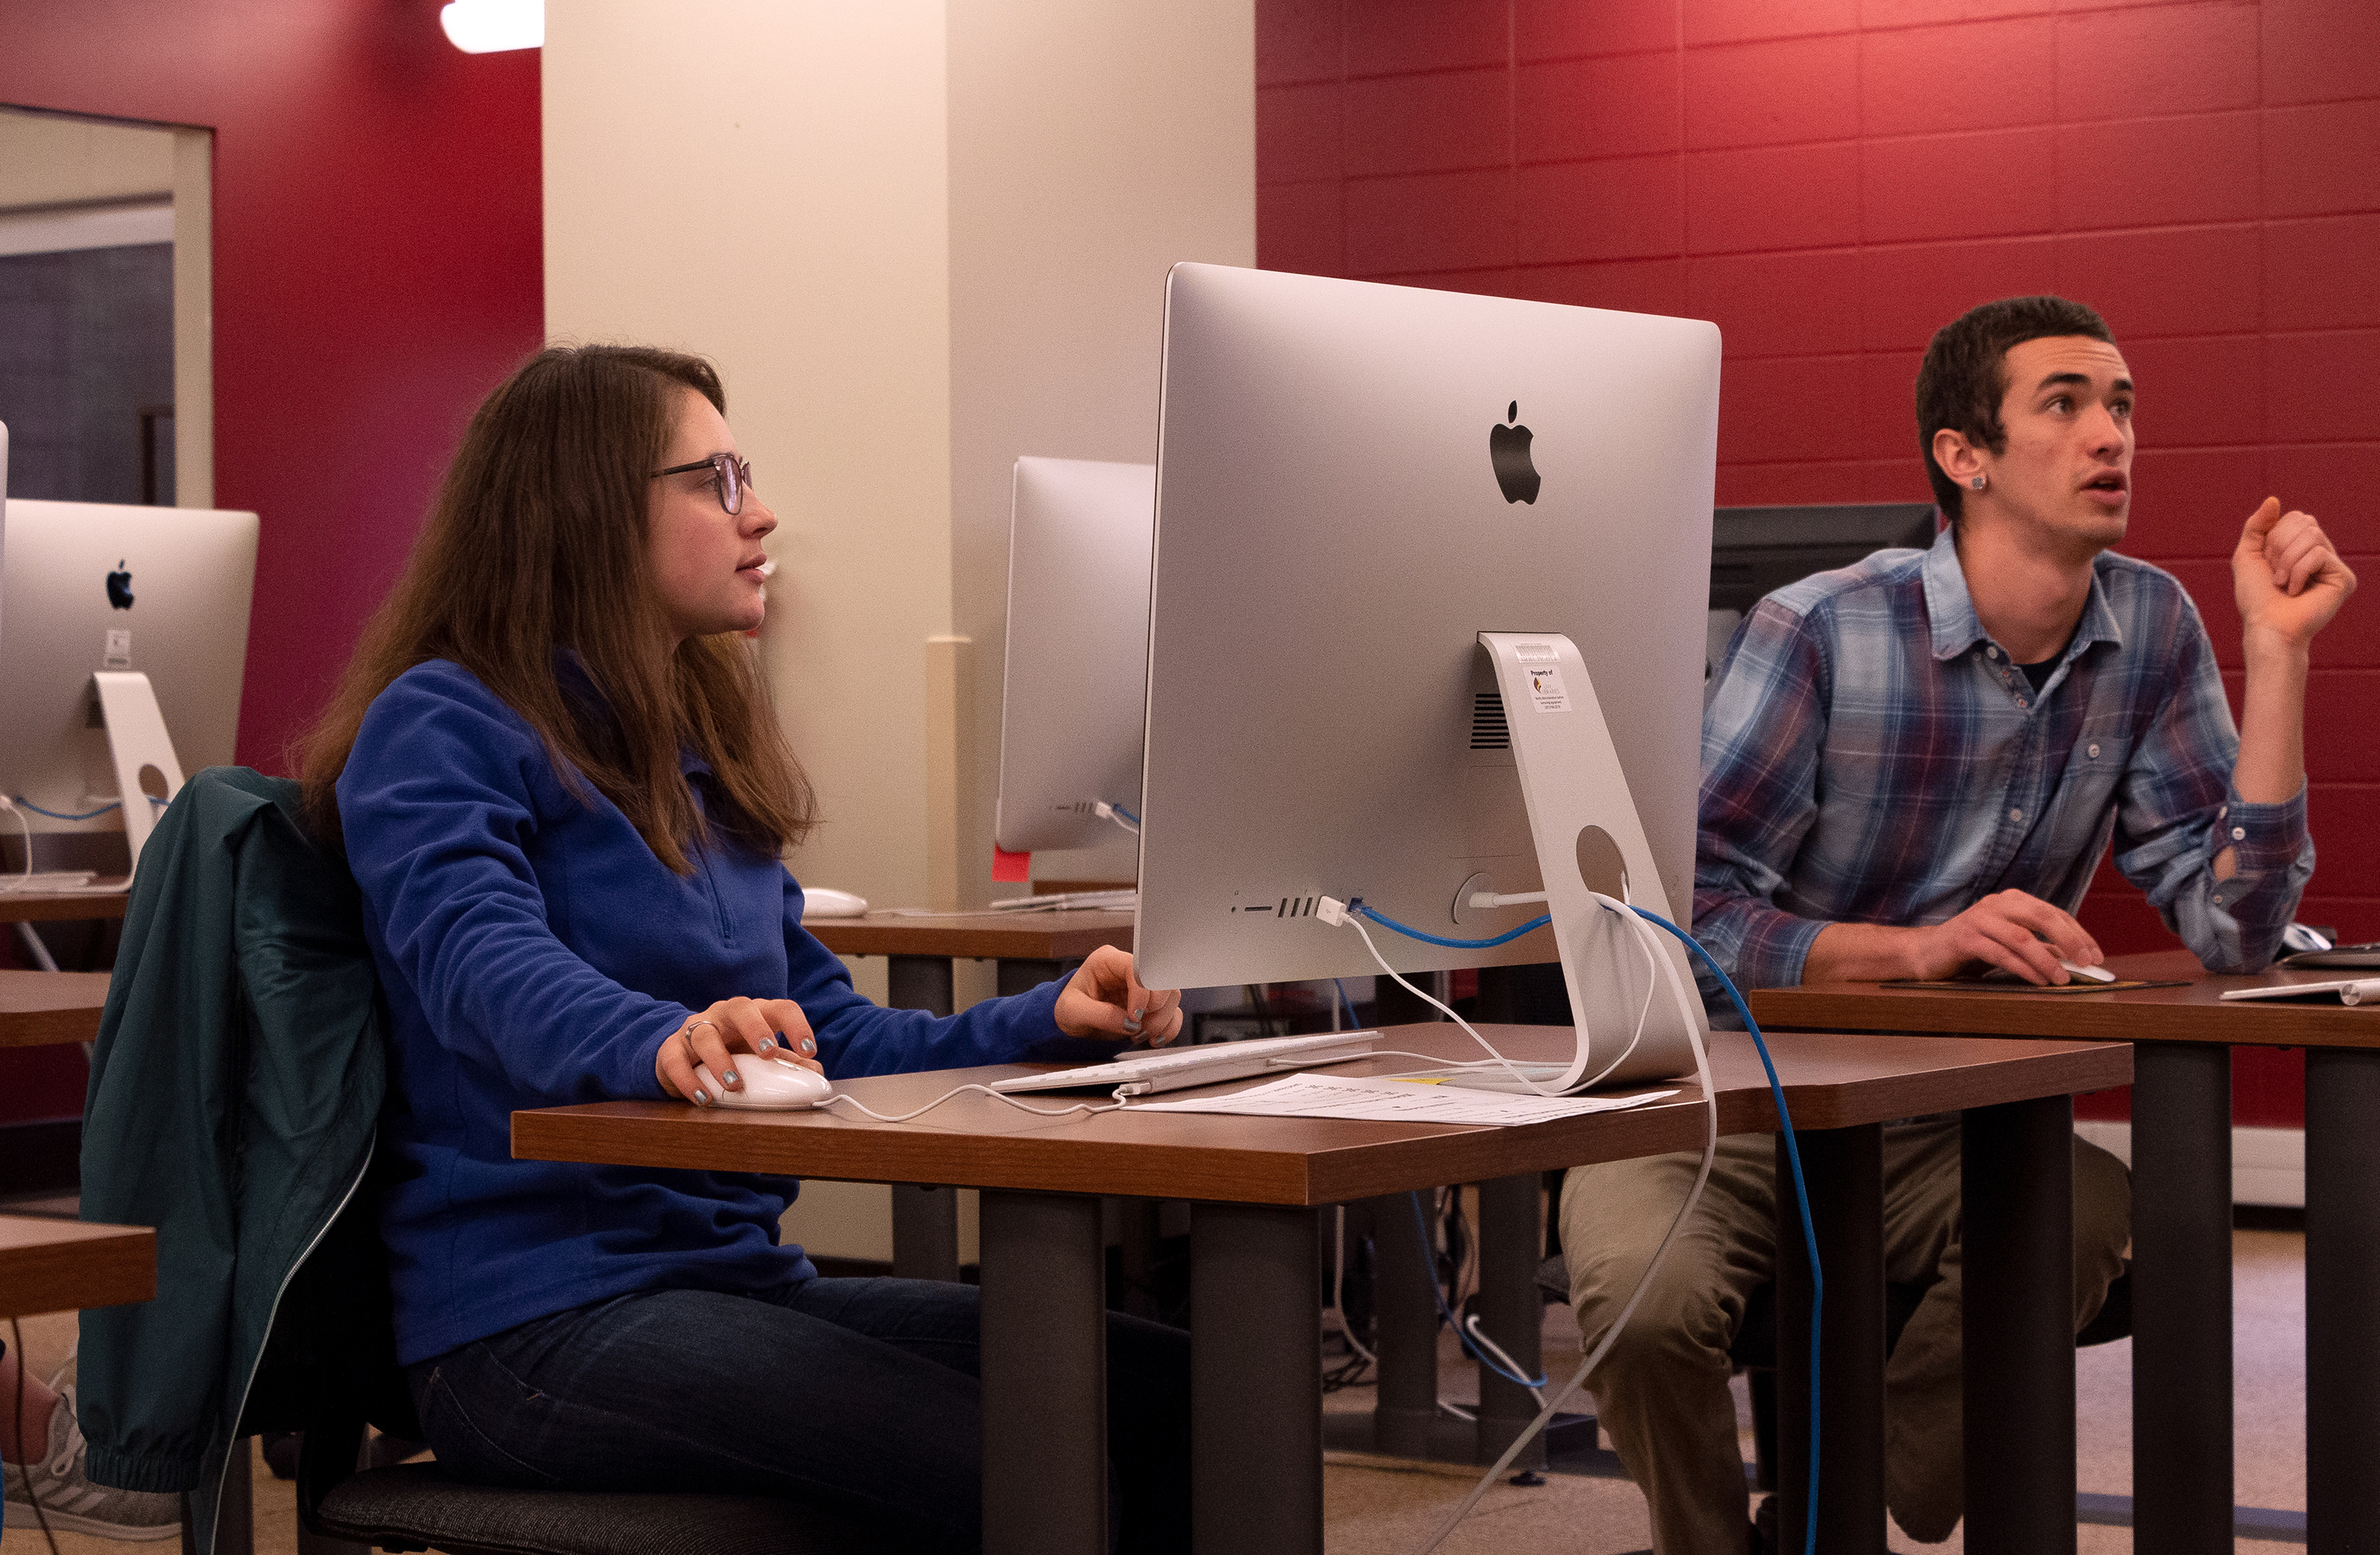 Two students working in a Mac computer lab.